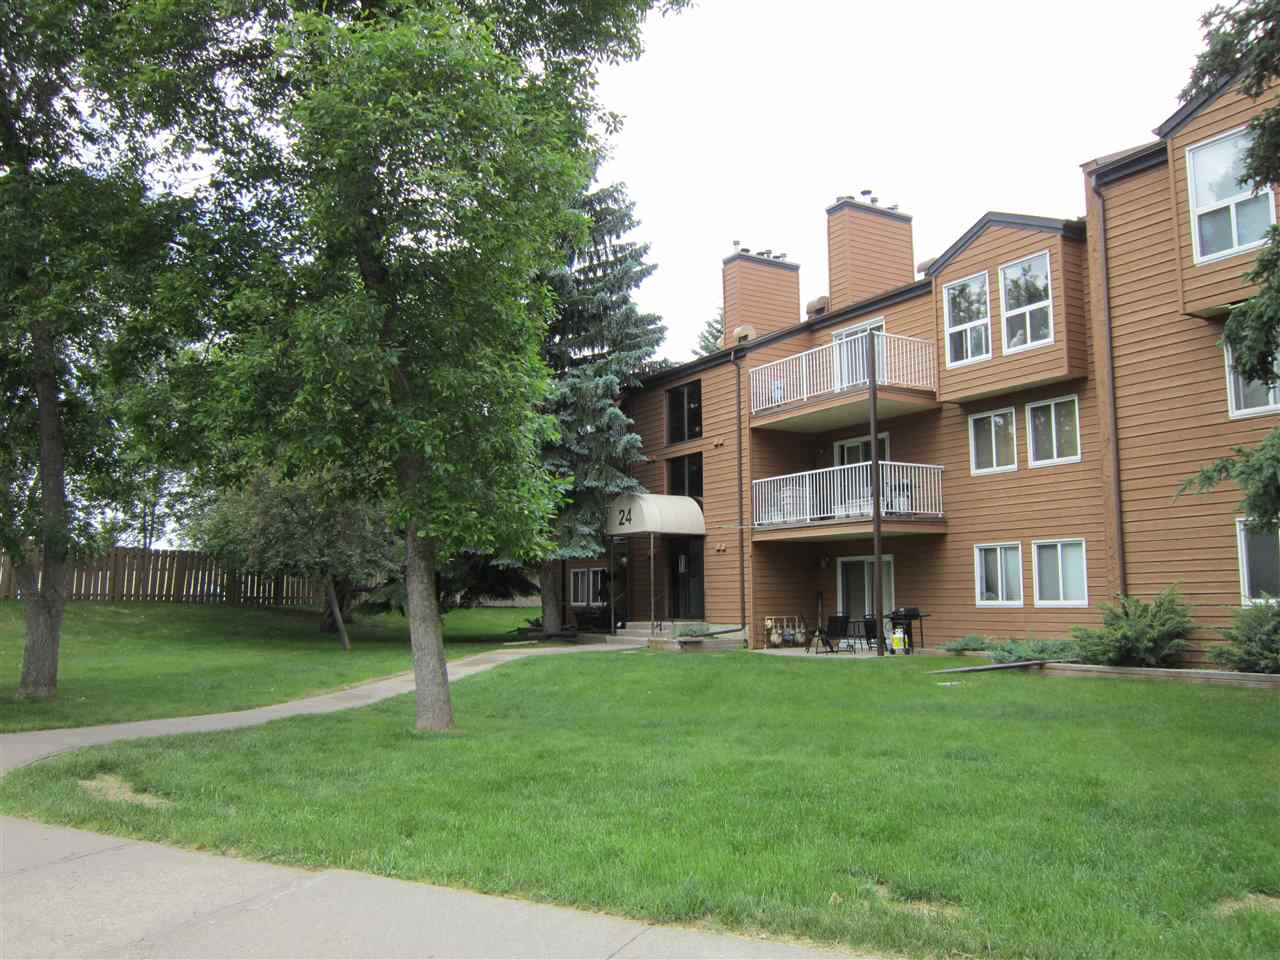 Main Photo: 202 24 ALPINE Place: St. Albert Condo for sale : MLS(r) # E4058519